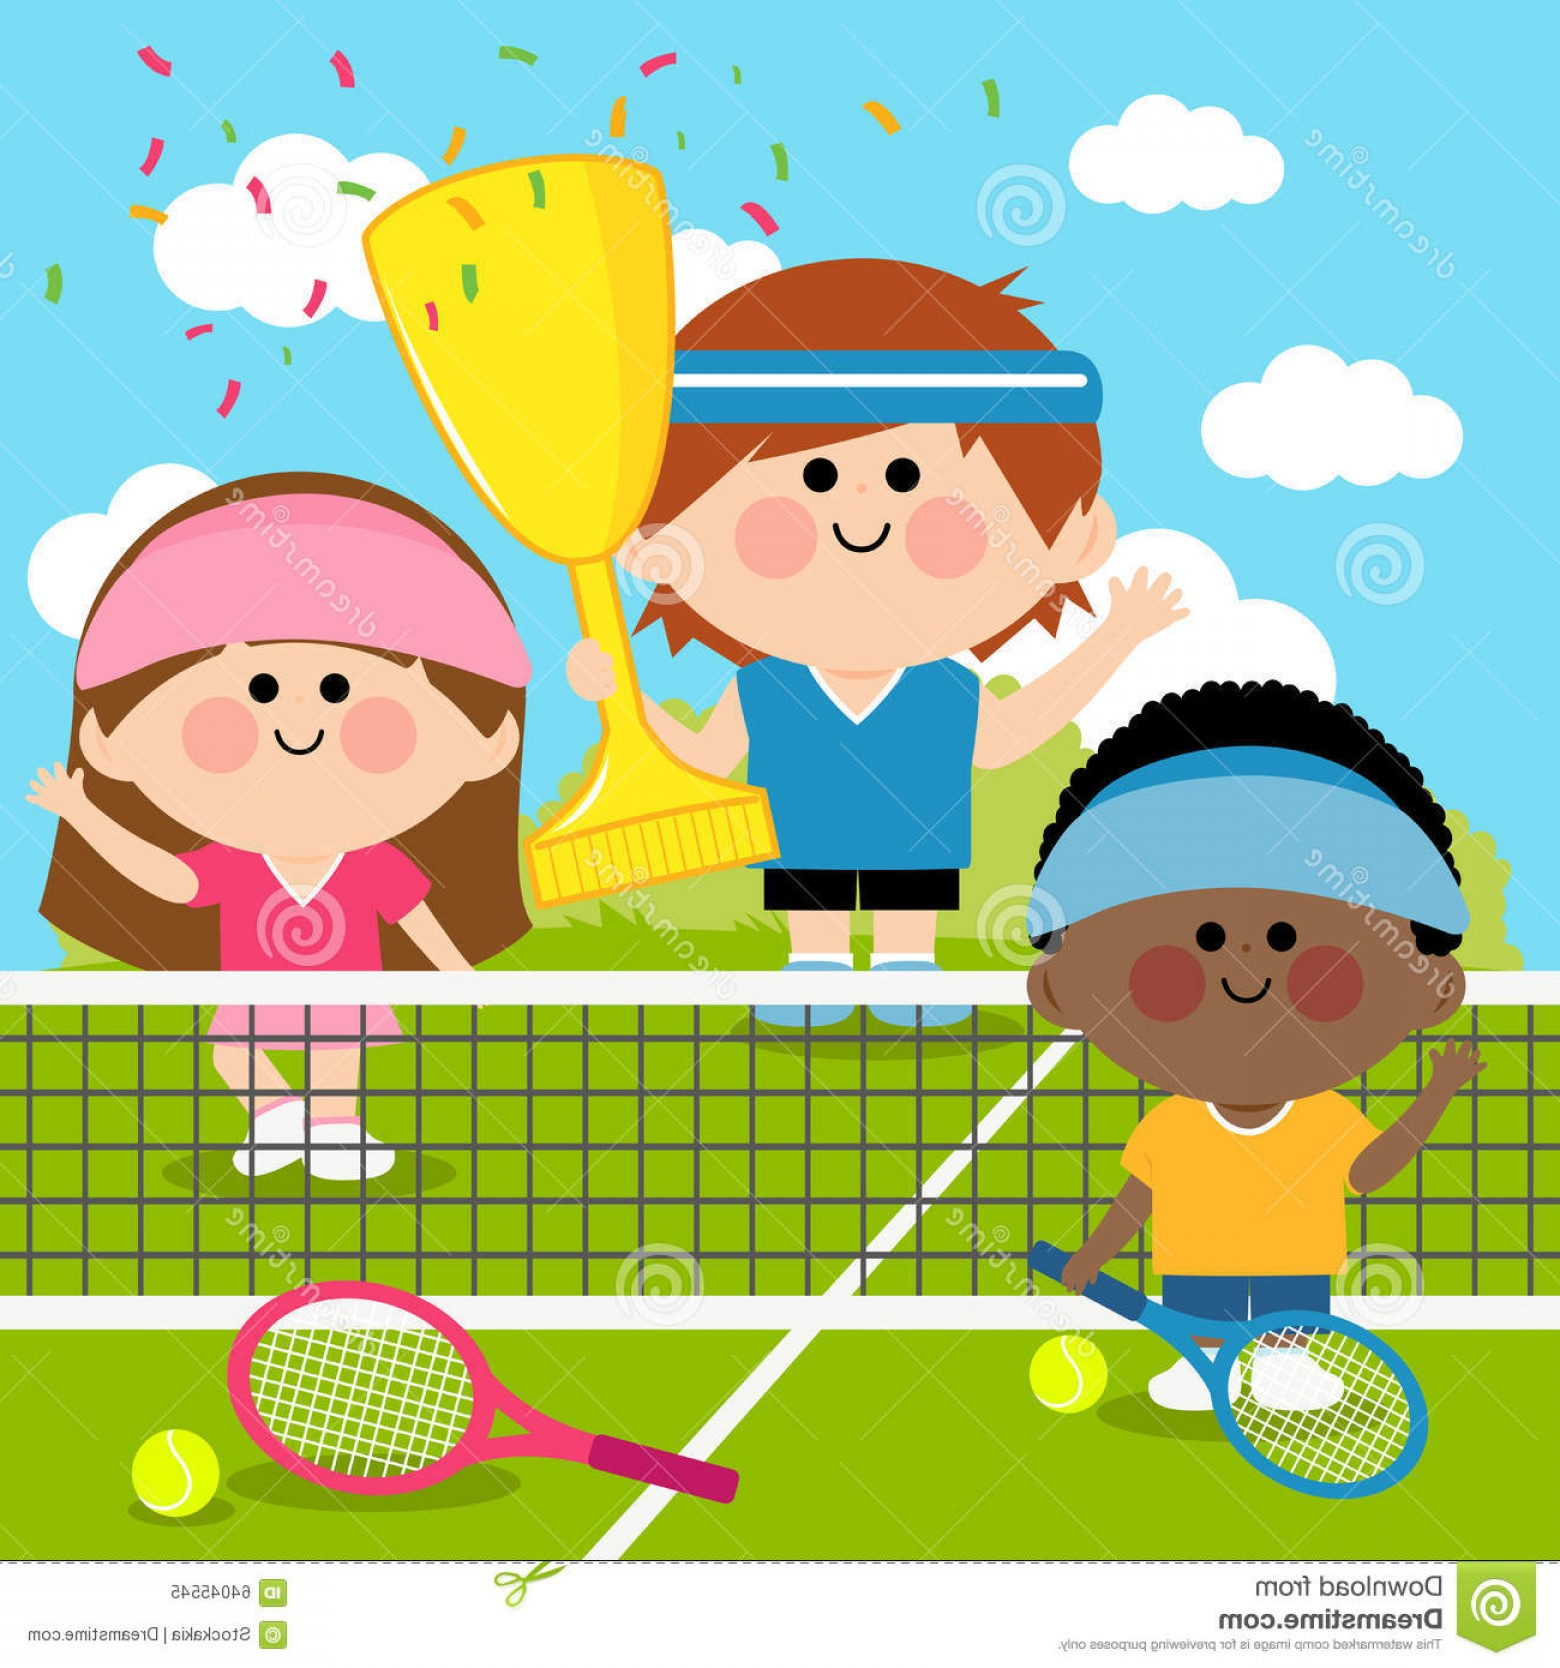 Champion Vector Art: Stock Illustration Champion Kids Tennis Players Tennis Court Holding Trophy Vector Illustration Children Winners Rackets Balls Image